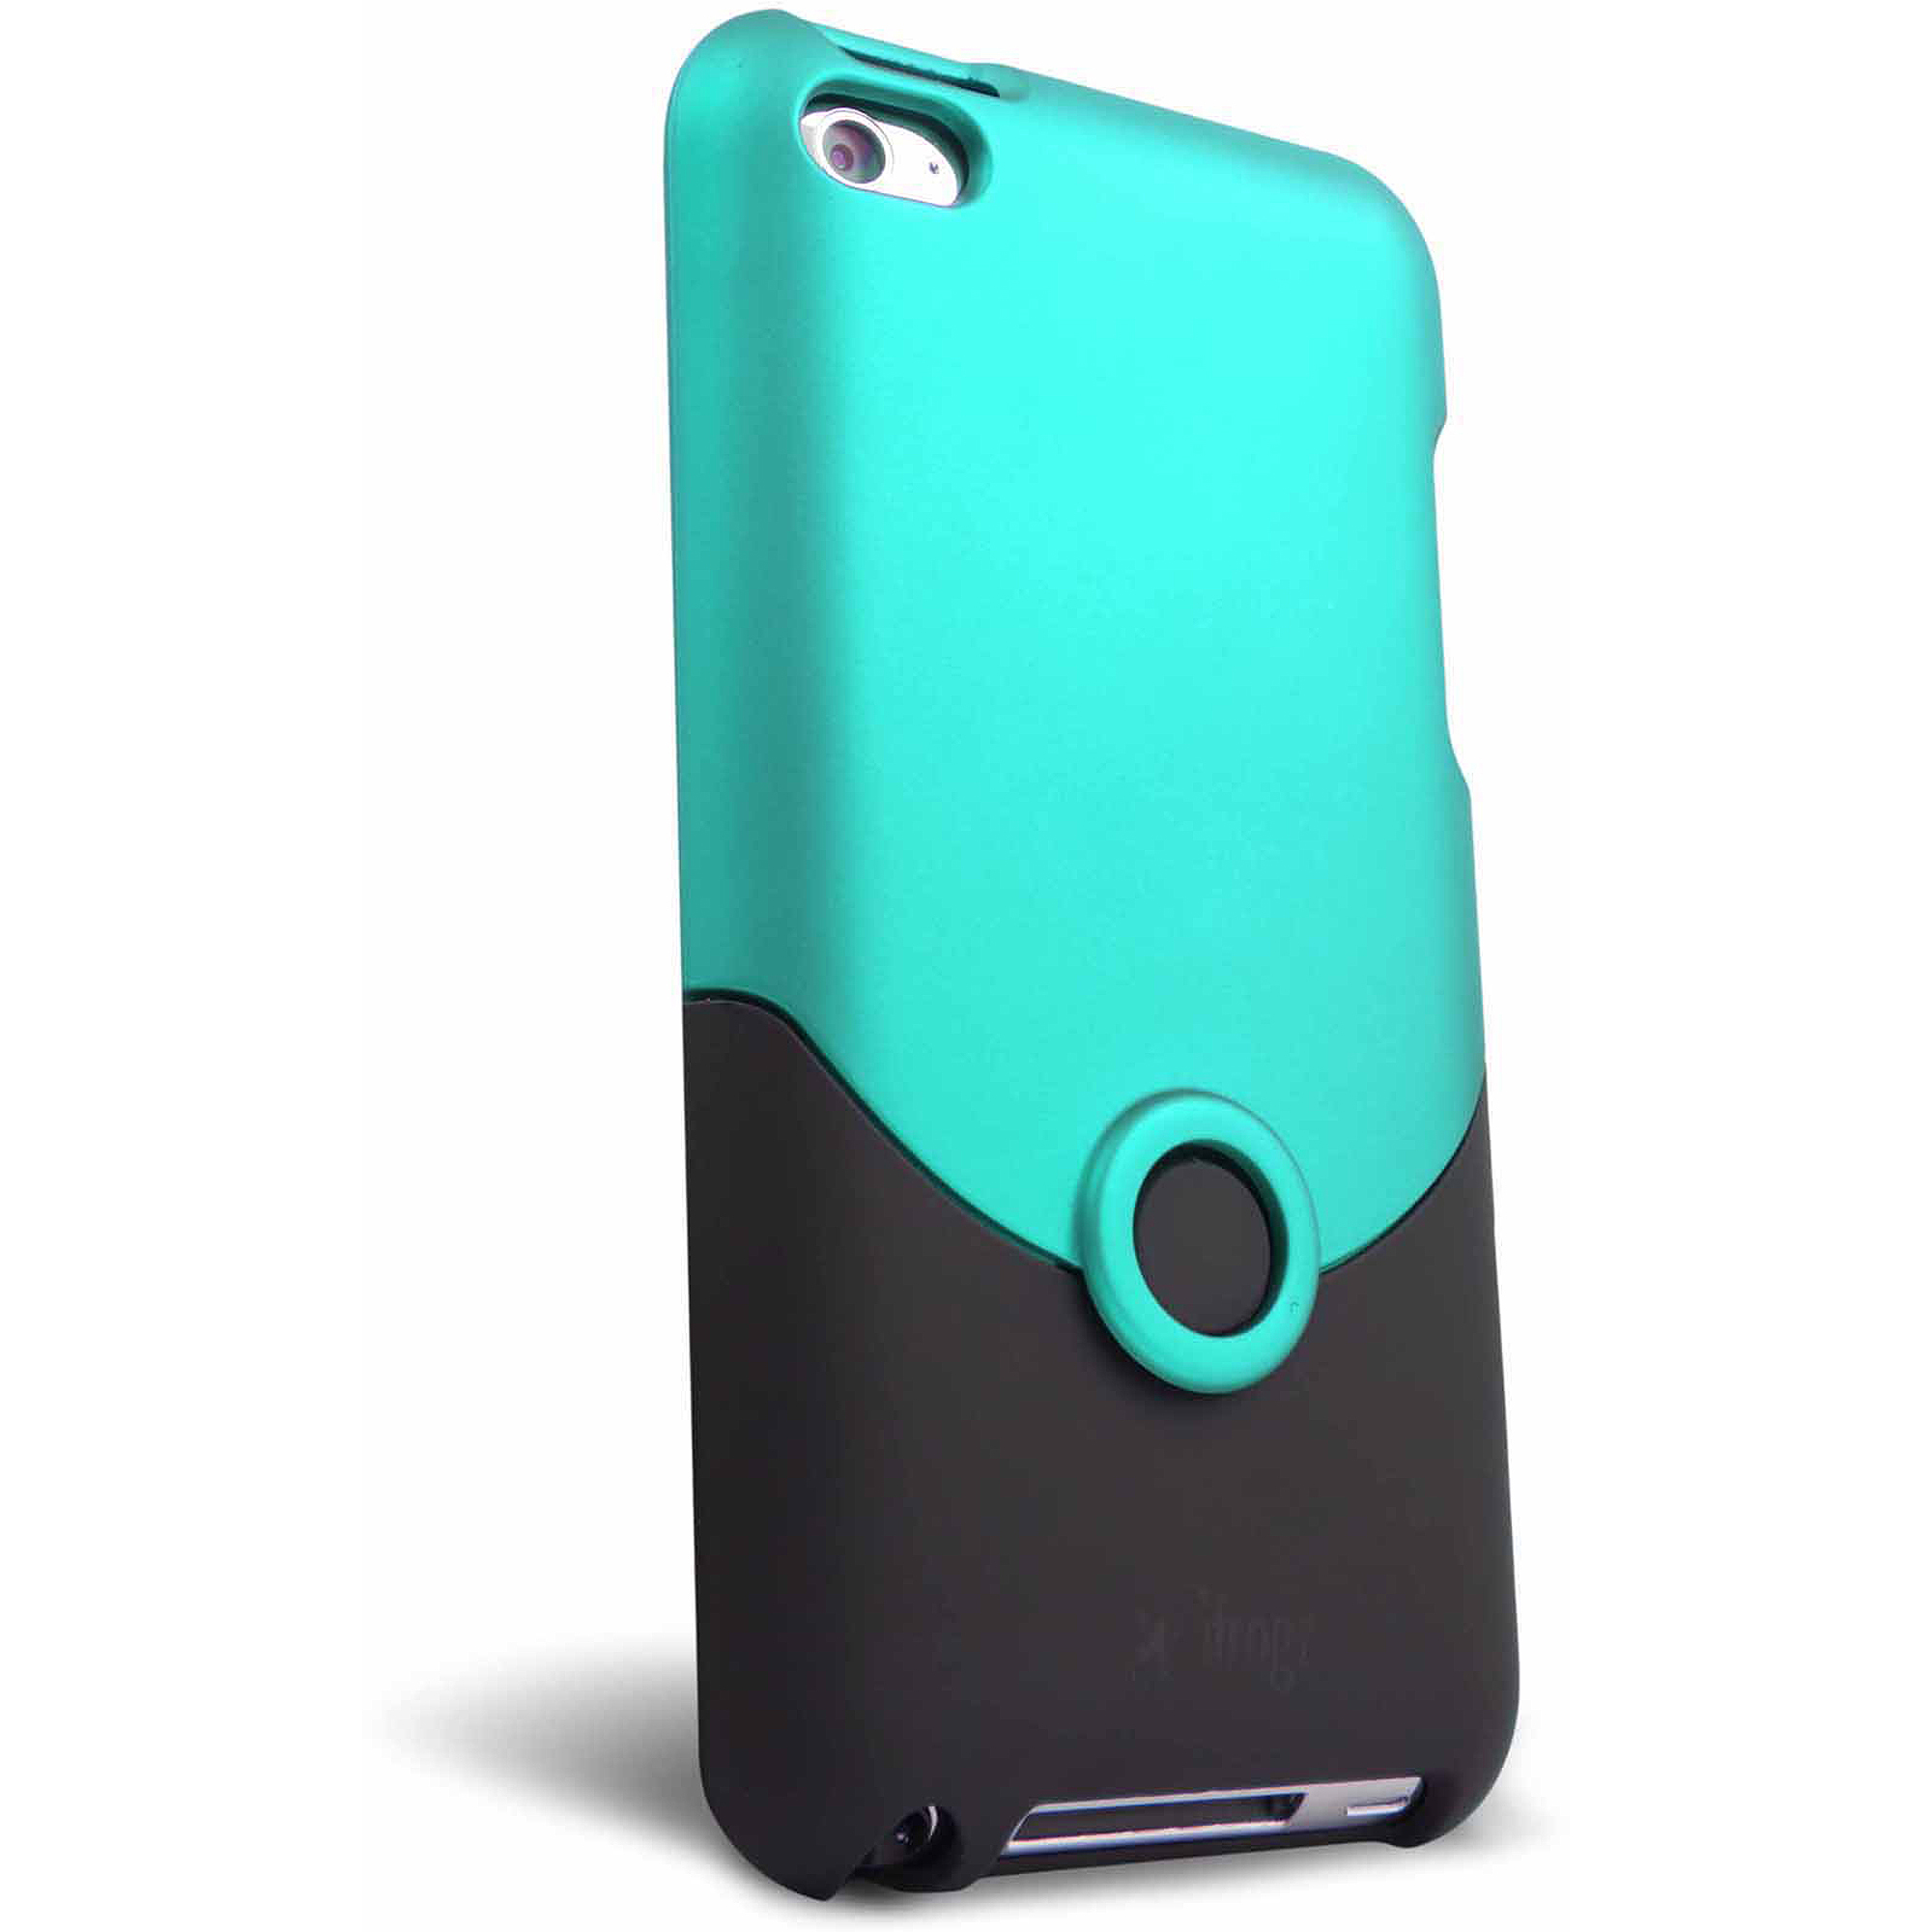 iFrogz Apple iPod touch 4 Luxe Original Case, Teal/Black